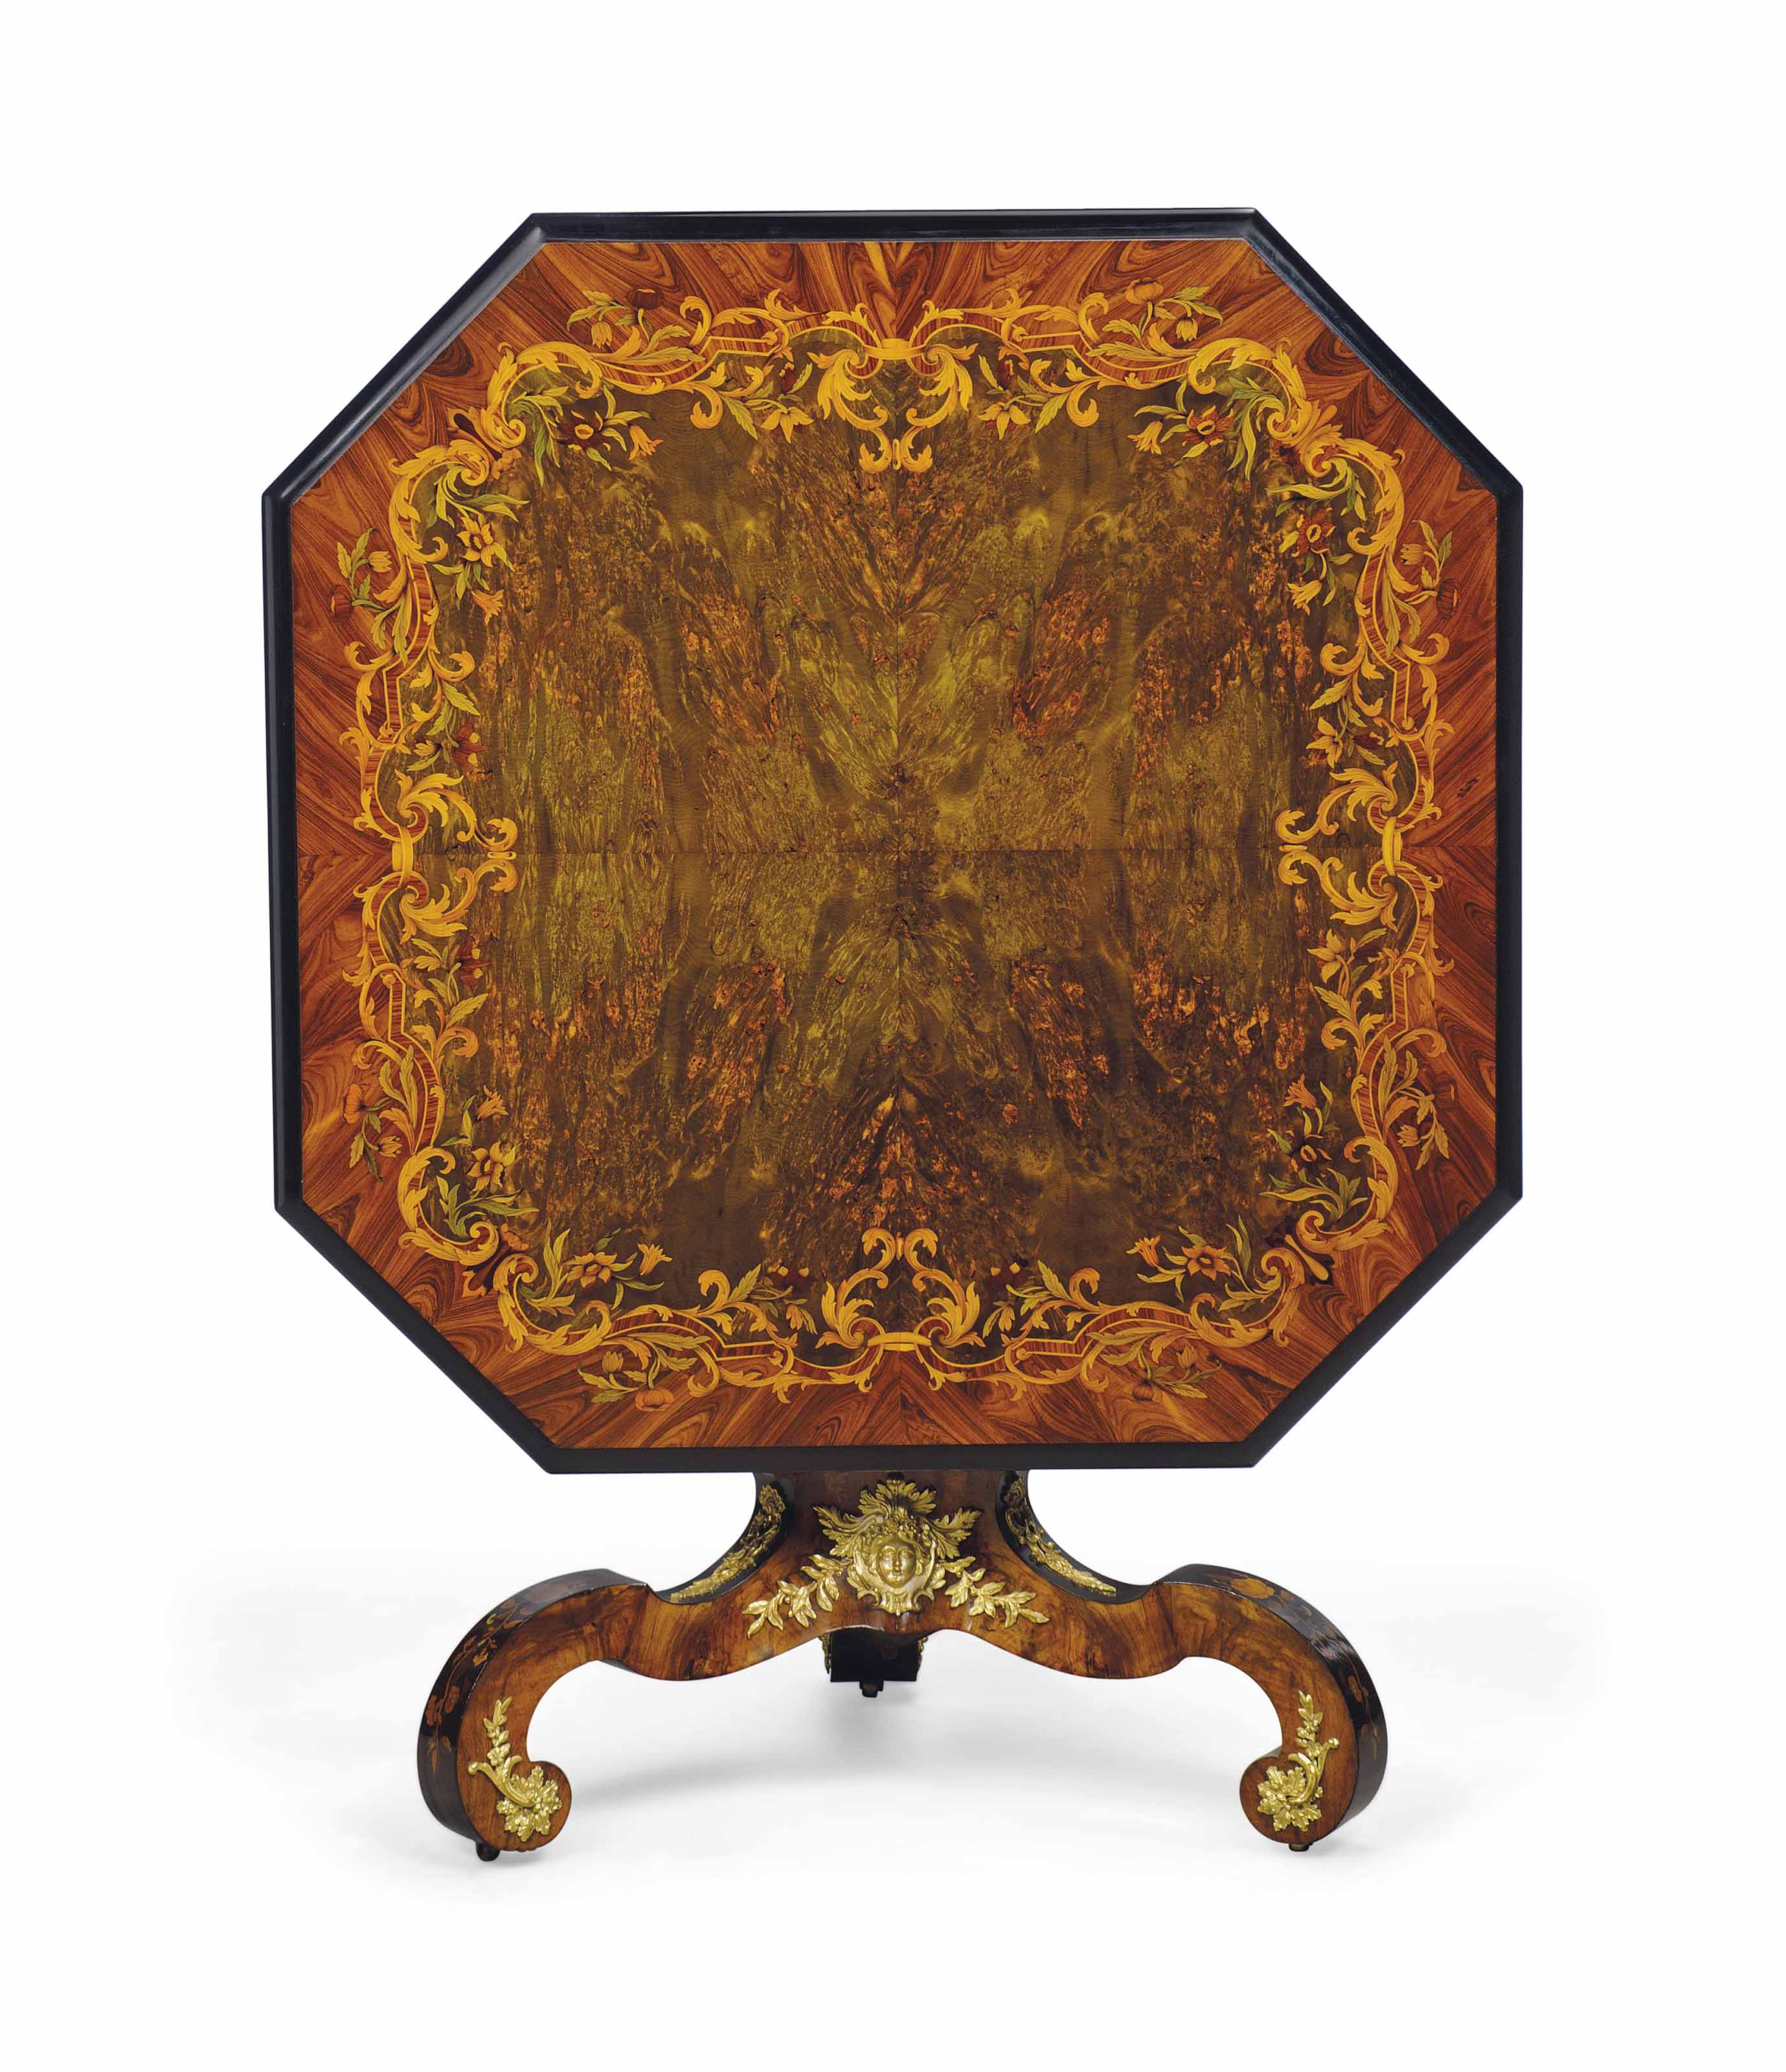 AN EARLY VICTORIAN ORMOLU-MOUNTED AND MOTHER-OF-PEARL INLAID BURR MAPLE, BURR WALNUT, KINGWOOD, TULIPWOOD AND MARQUETRY CENTRE TABLE